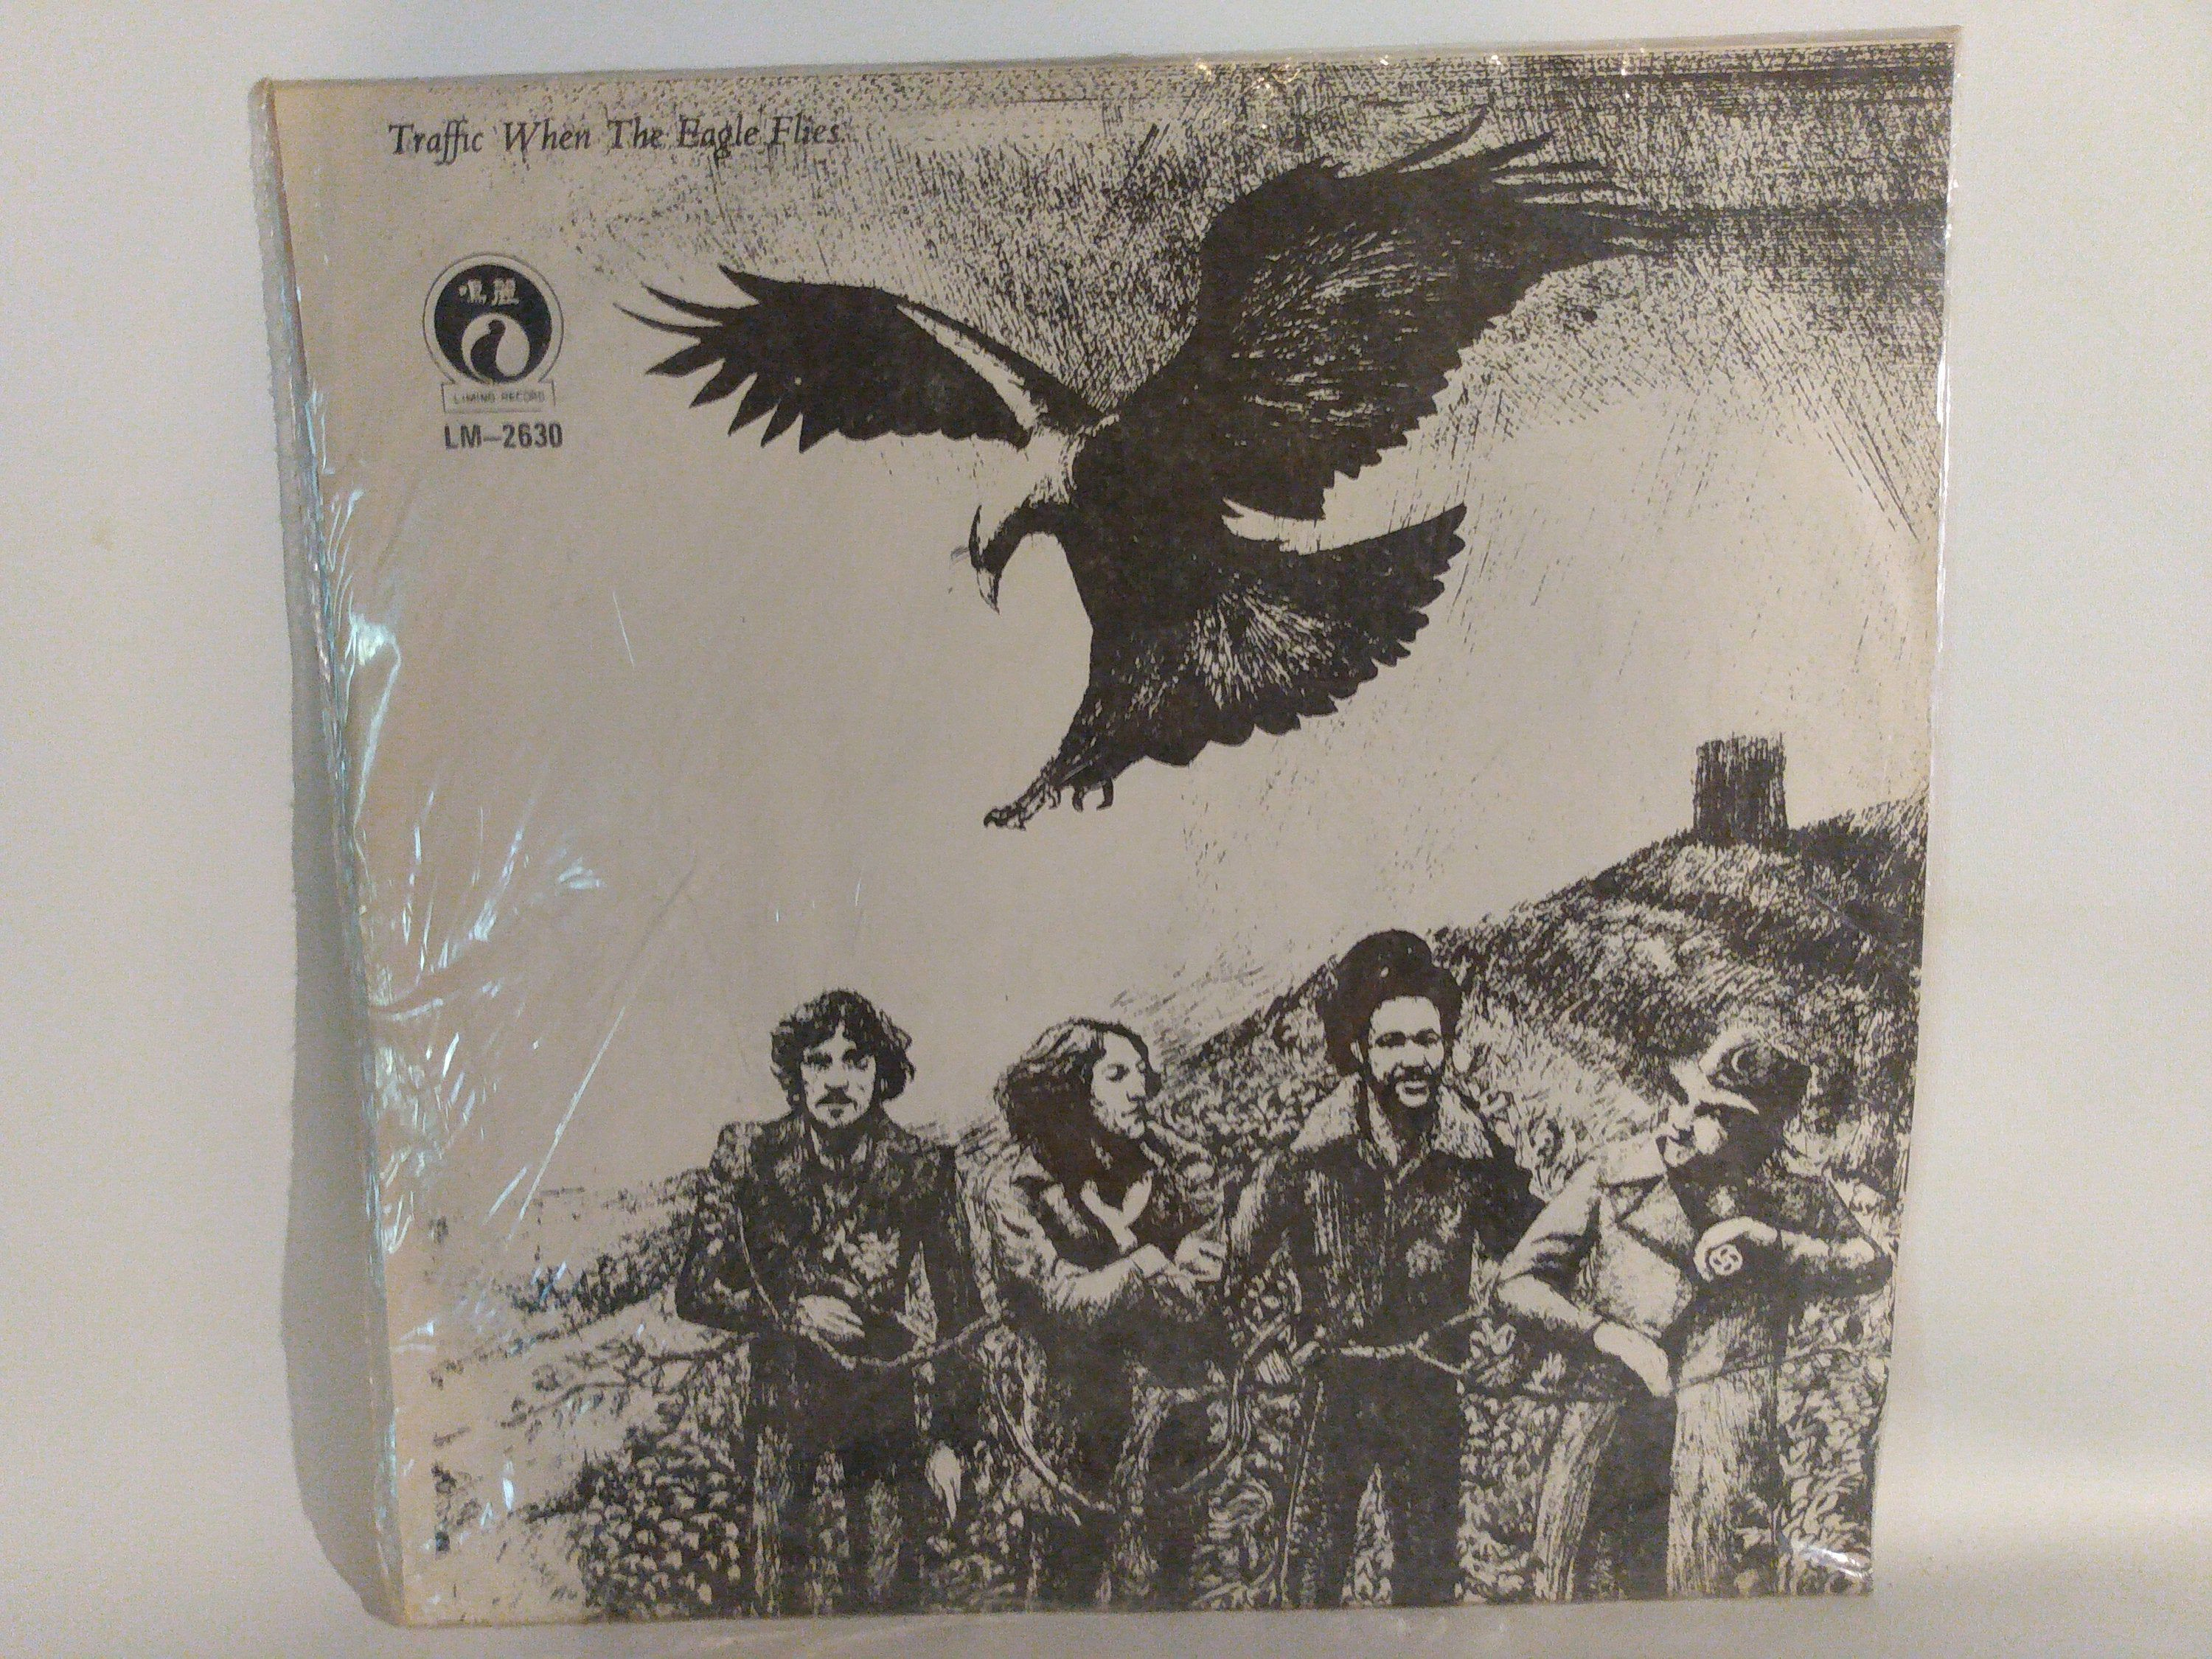 Traffic When The Eagles Fly 1974 Liming Records Taiwan Import Excellent Vinyl By Theposterposter On Etsy In 2020 Vinyl Records Records Eagles